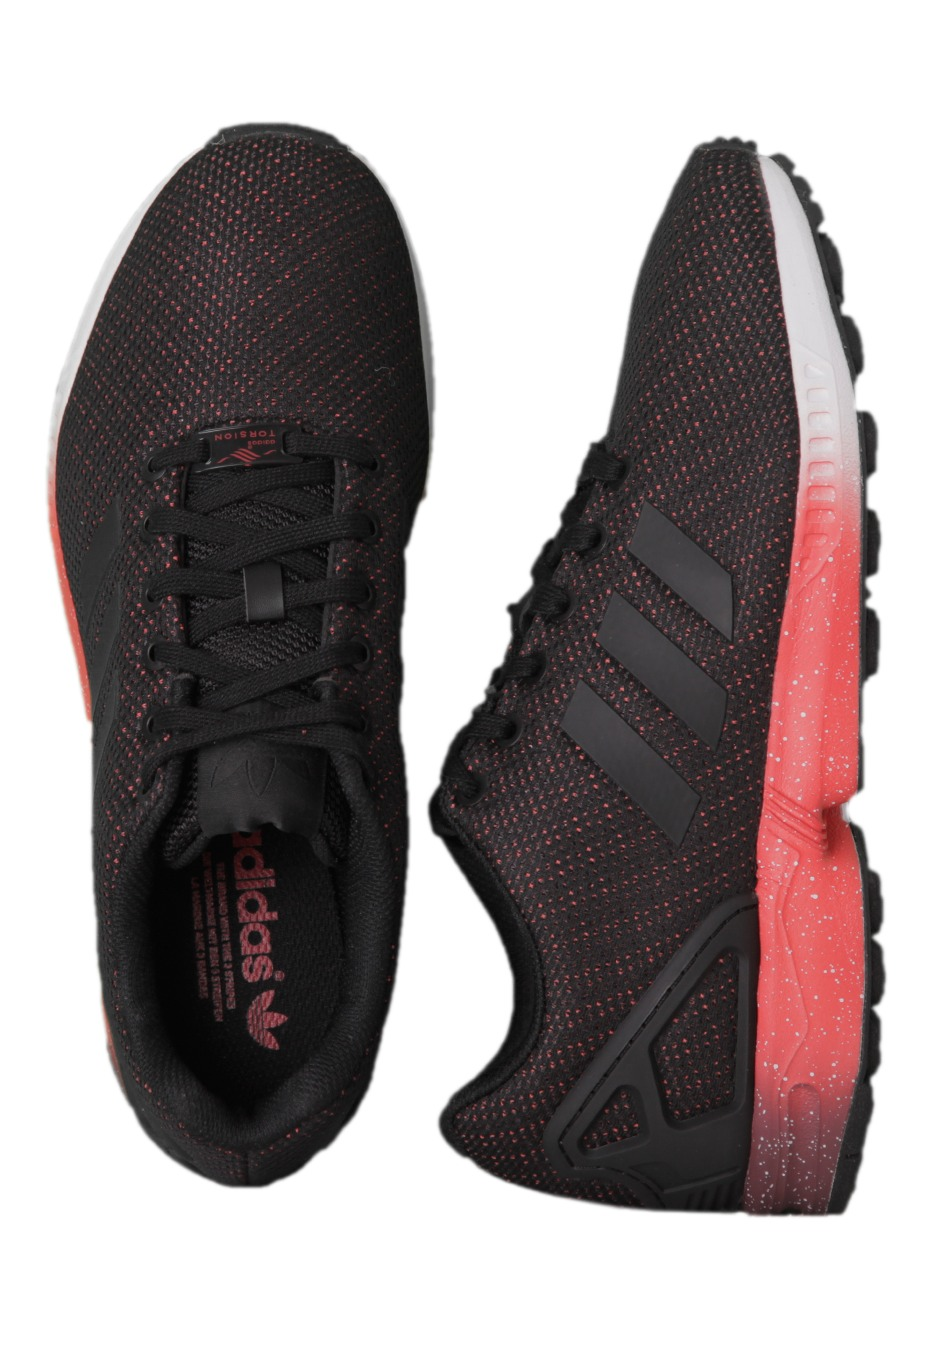 new styles a8e9c a33a3 Adidas - ZX Flux Core Black/Red/Power Red - Shoes